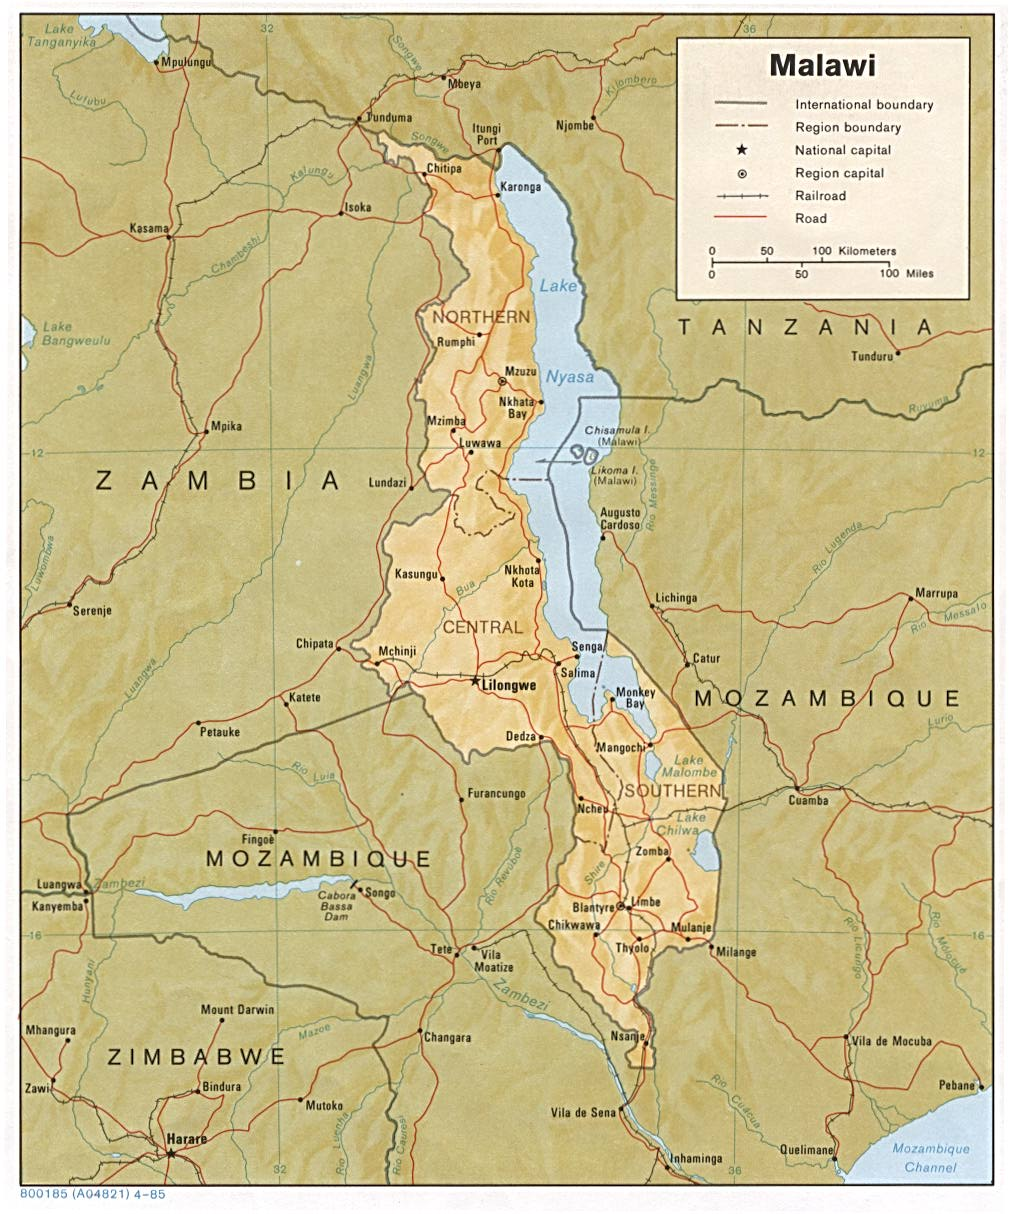 Mapa de Relieve Sombreado de Malawi